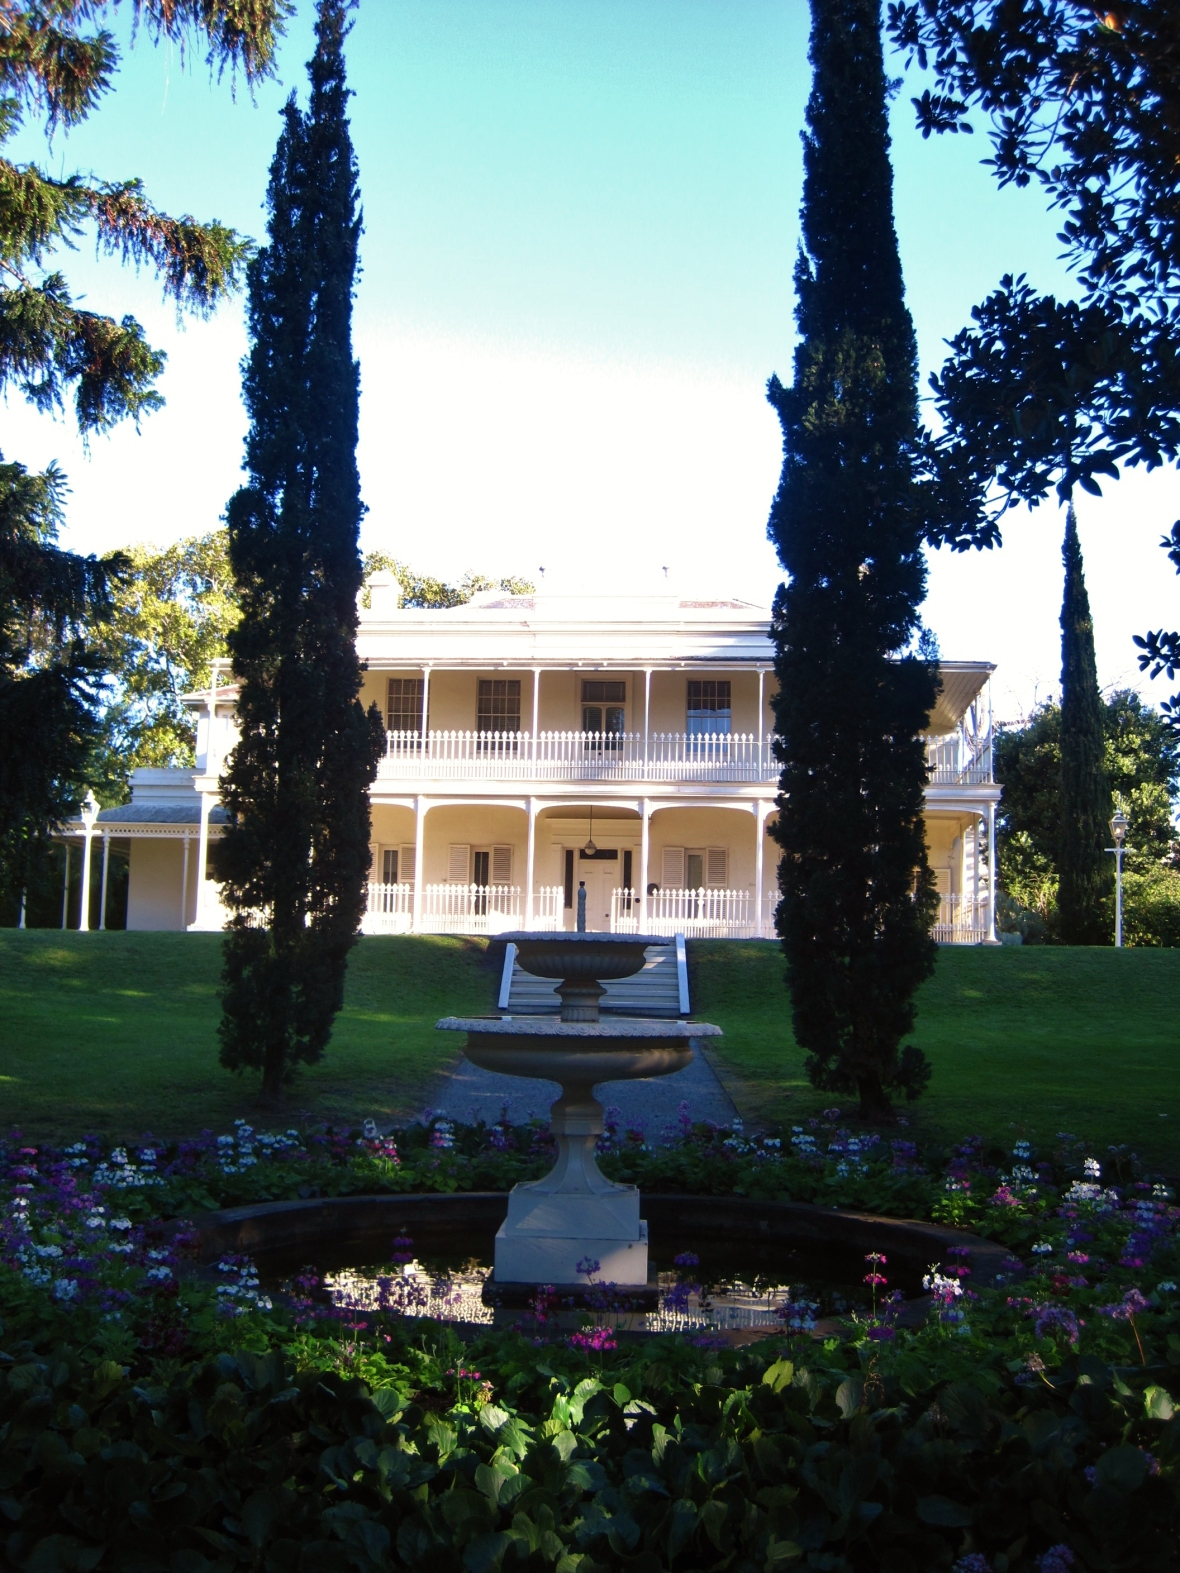 Afternoon Tea at Como House - the setting